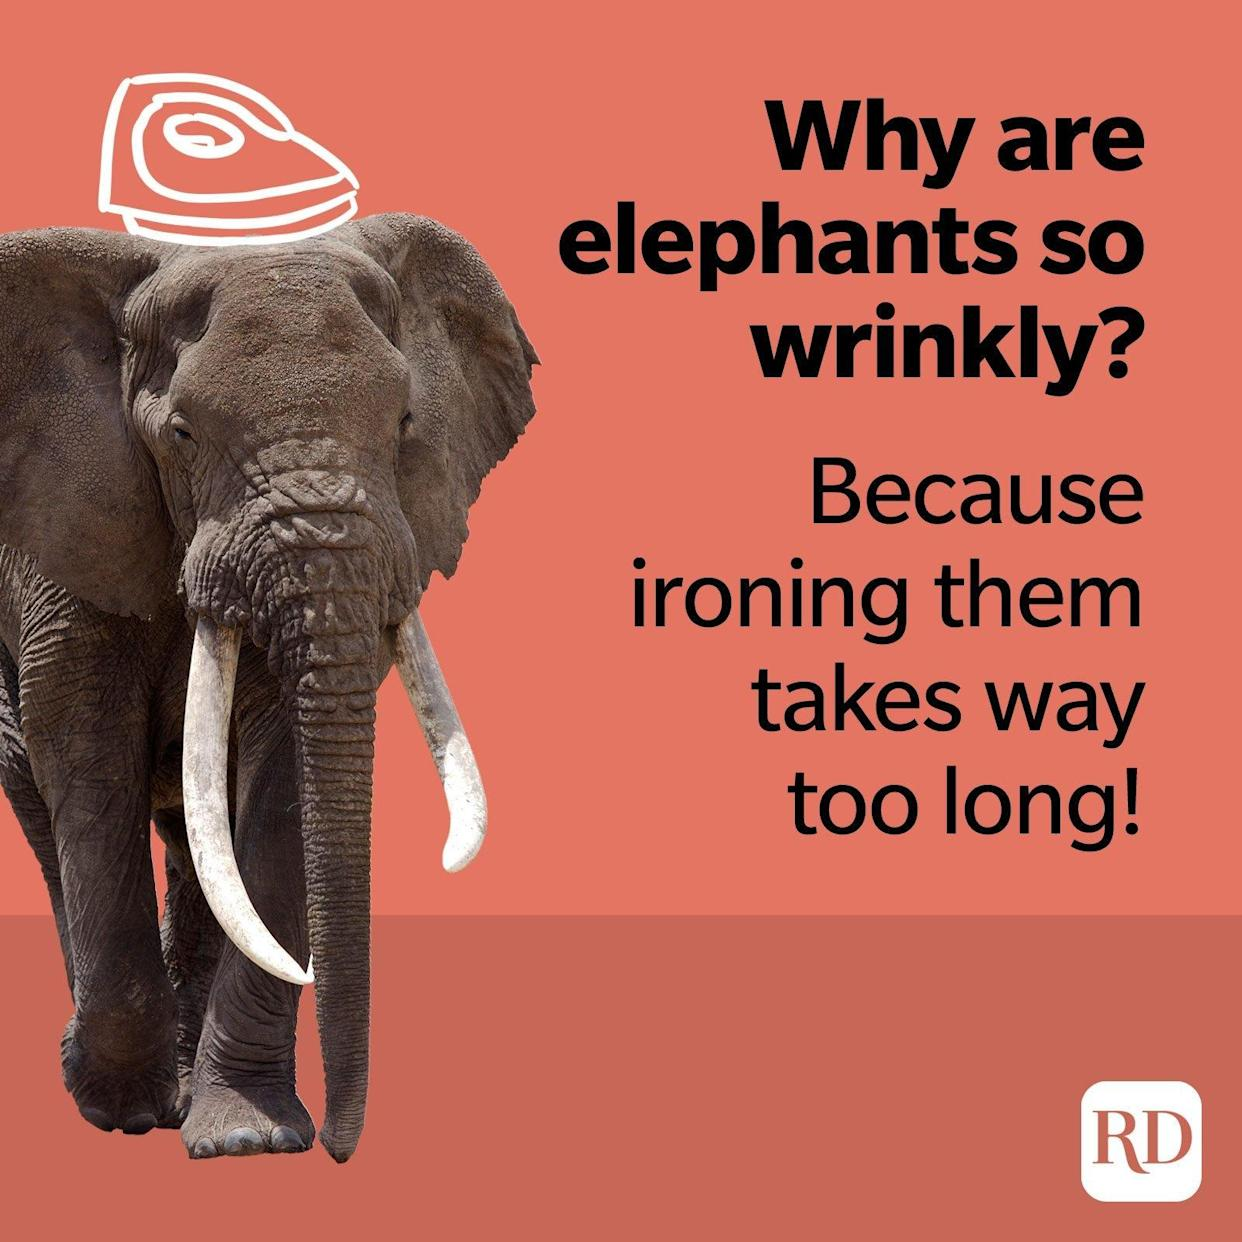 Why are elephants so wrinkly? Because ironing them takes way too long.